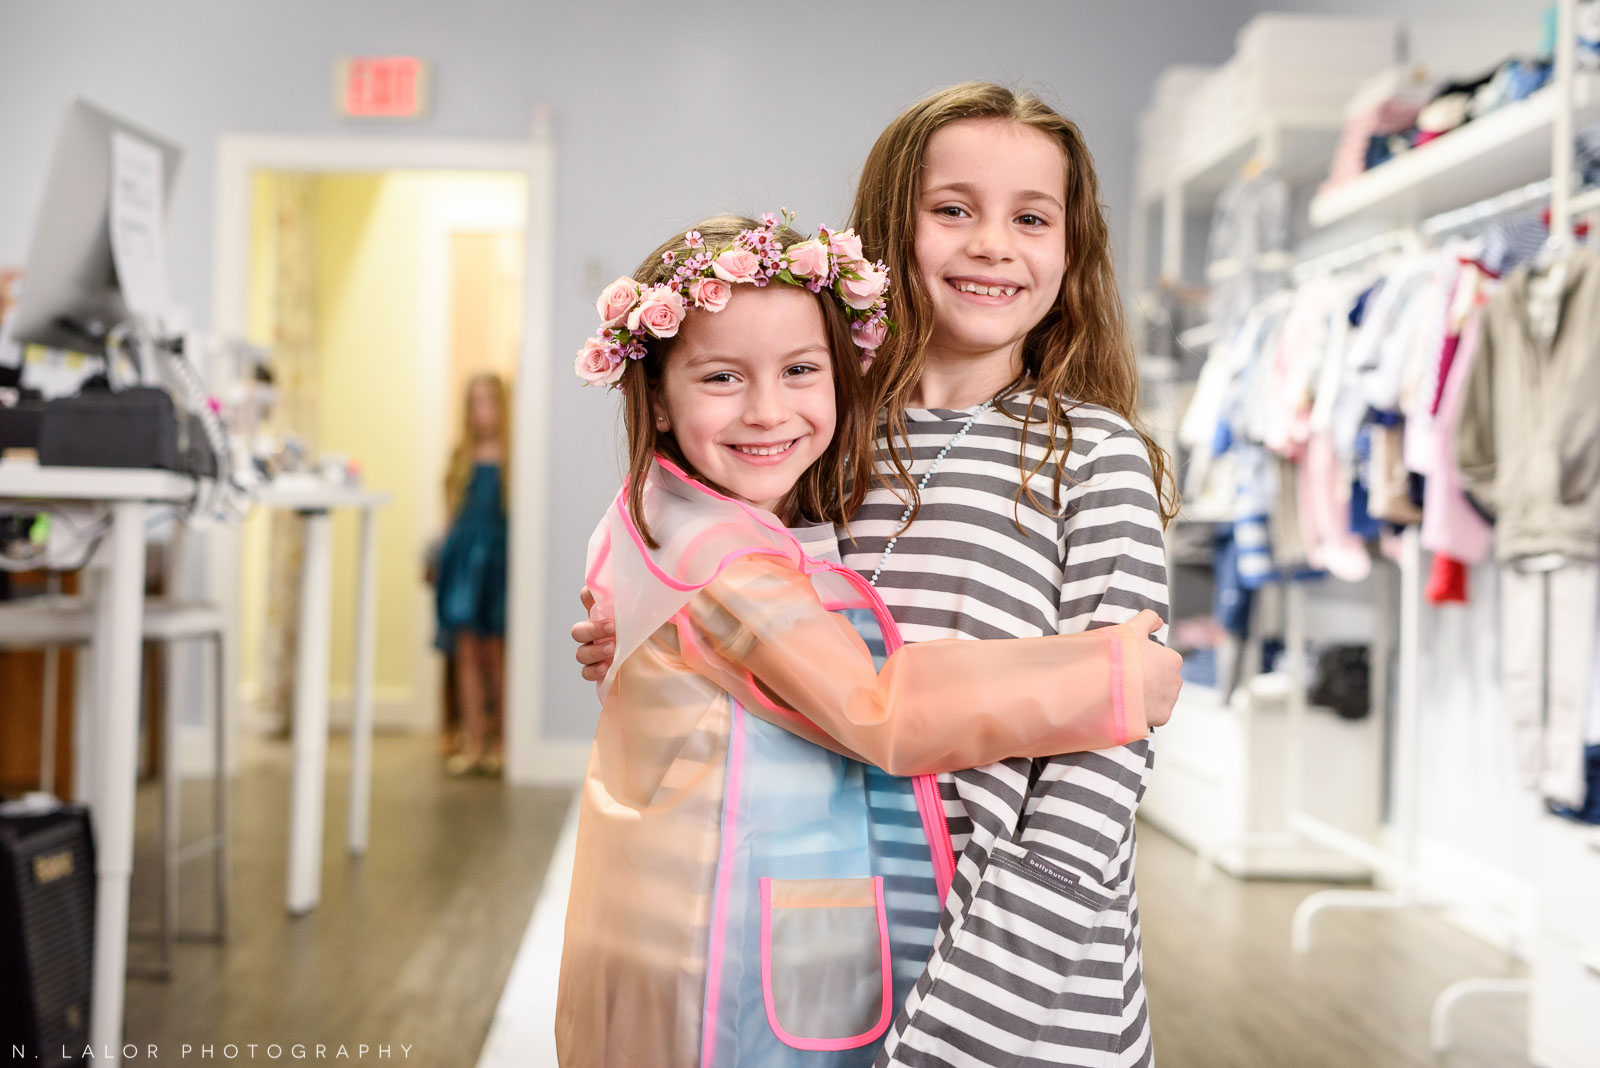 nlalor-photography-2017-02-25-ella-and-henry-spring-fashion-show-36.jpg